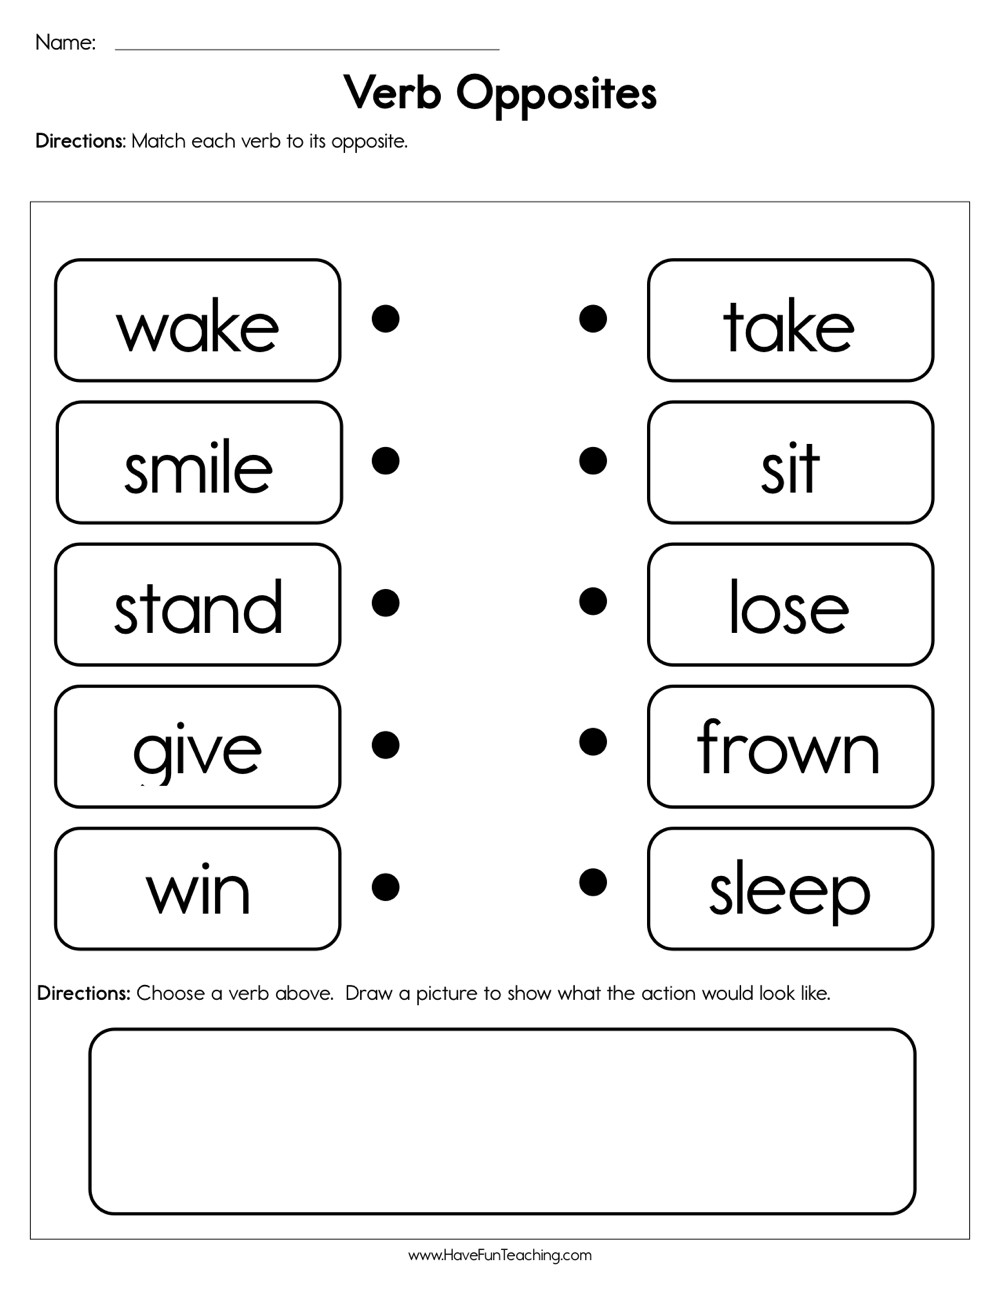 Opposites Preschool Worksheets Verb Opposites Worksheet